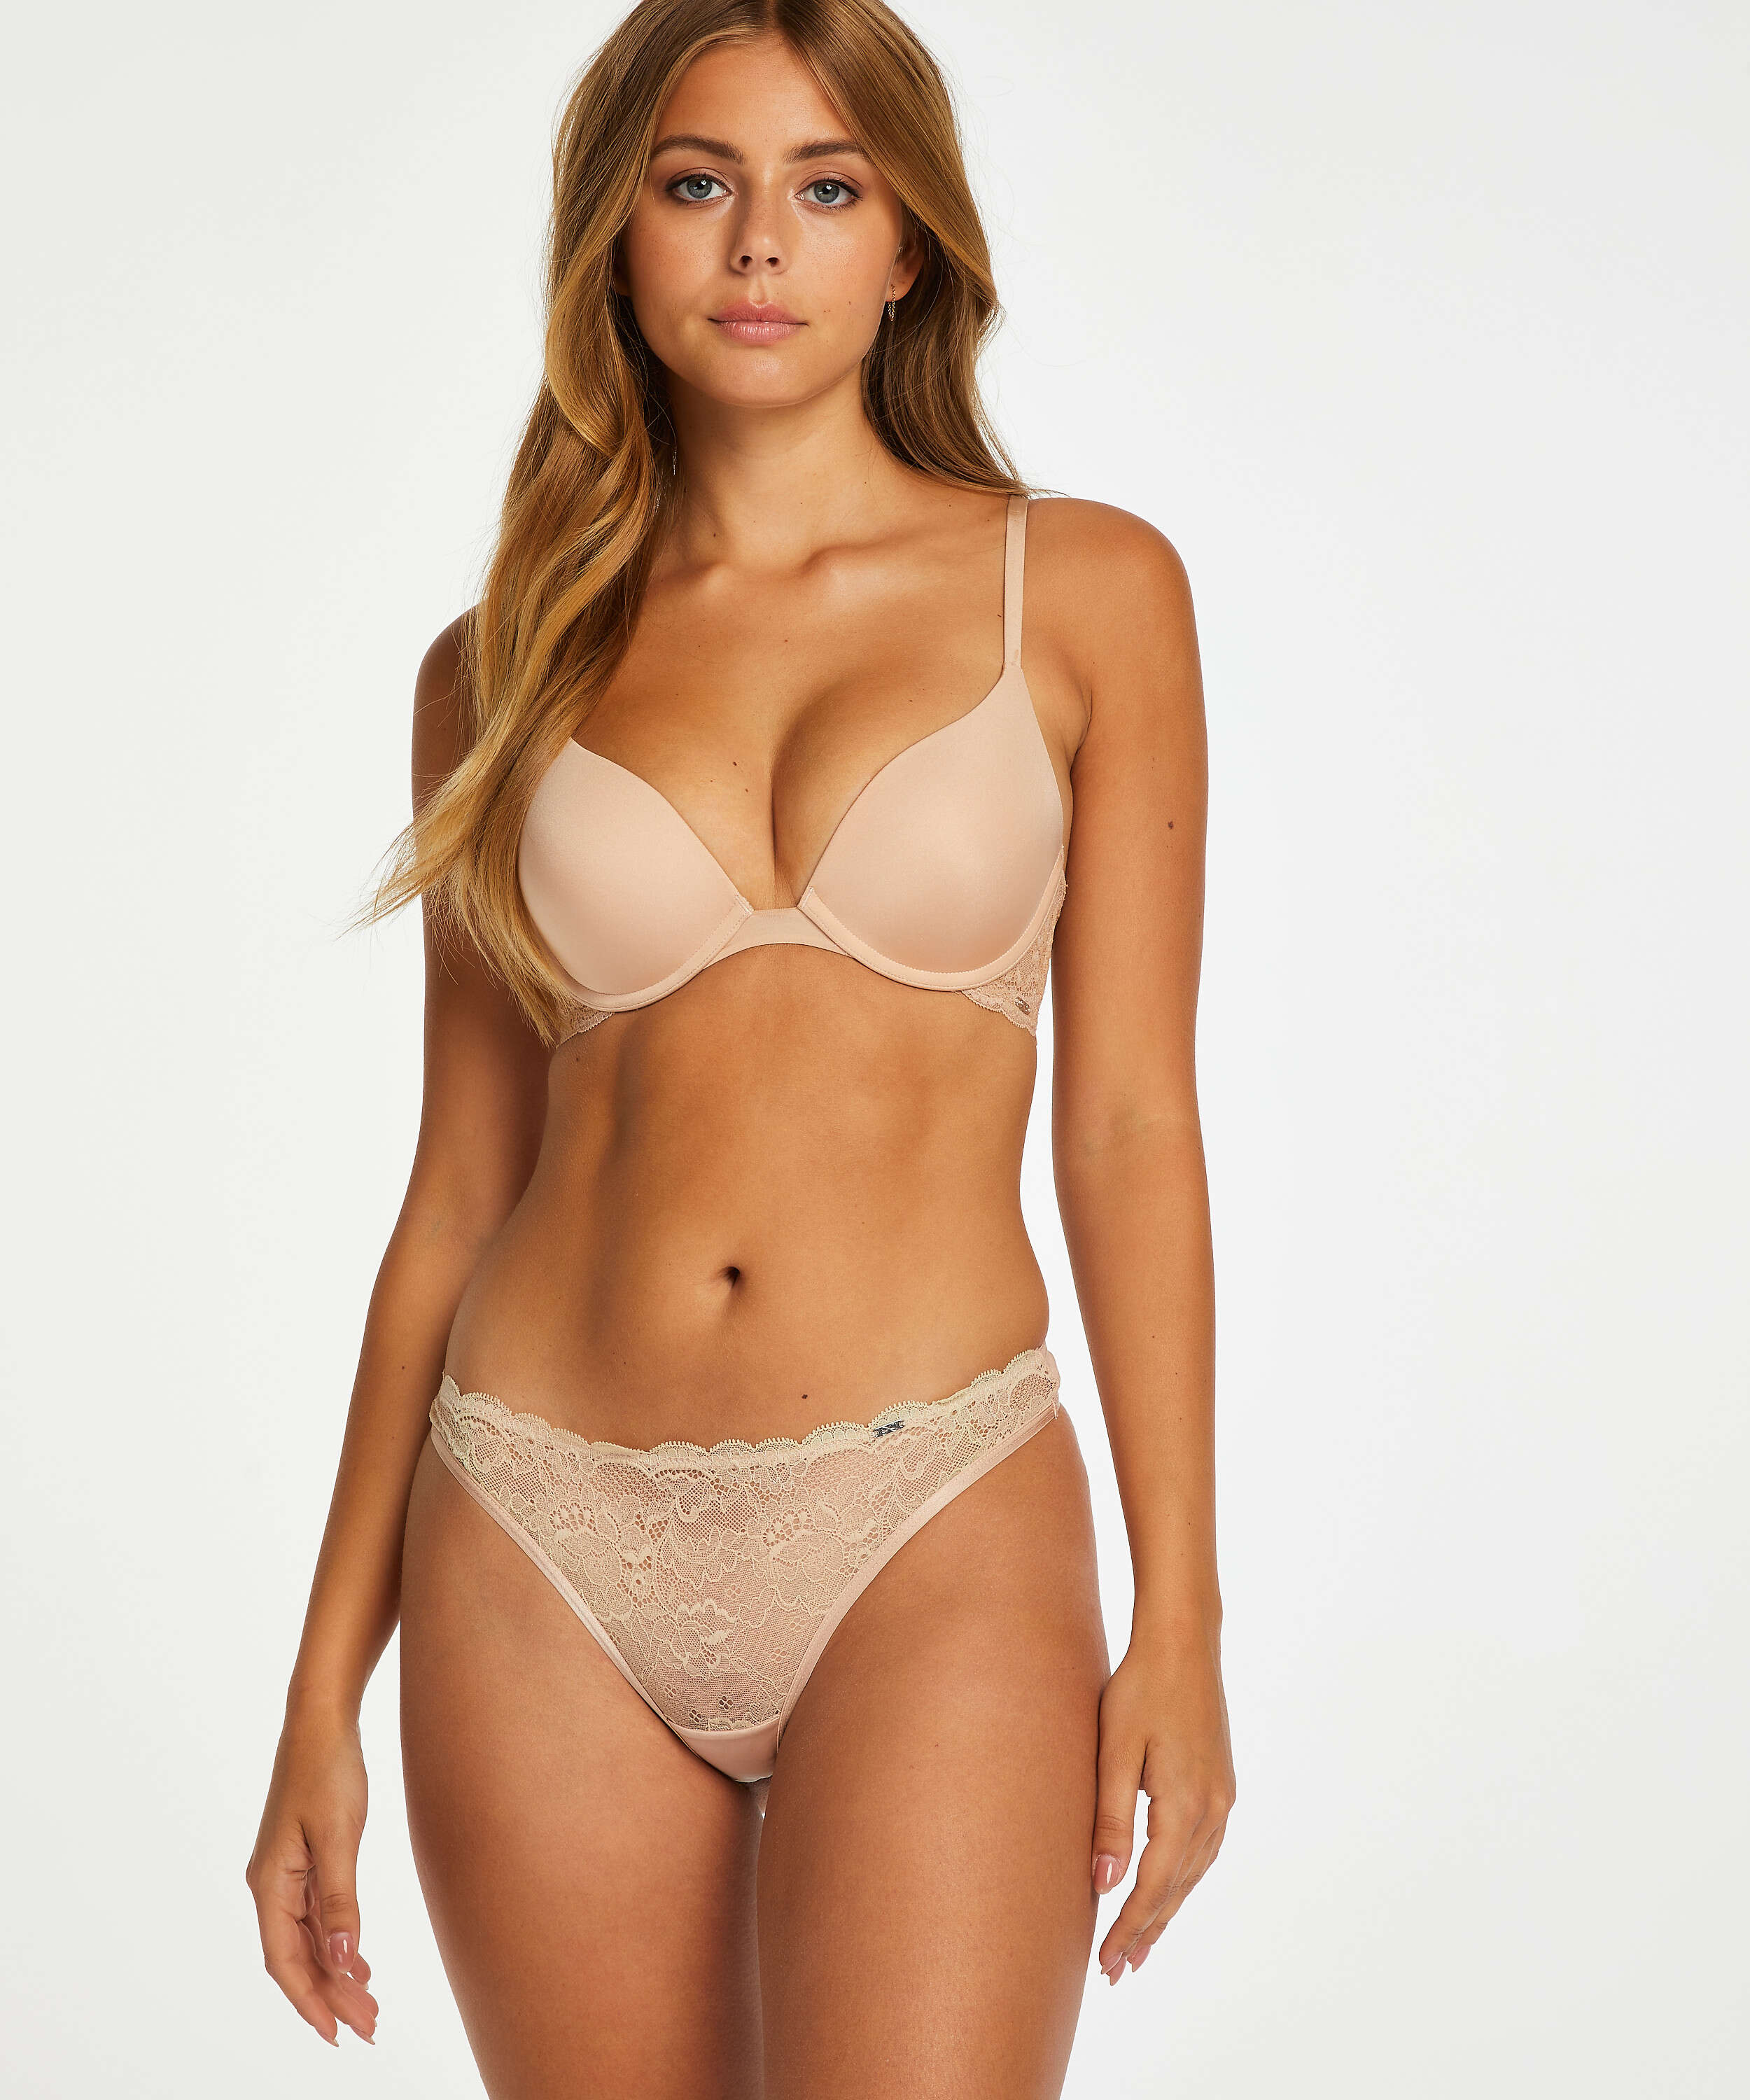 Vorgeformter Push-up-Bügel-BH Angie, Beige, main